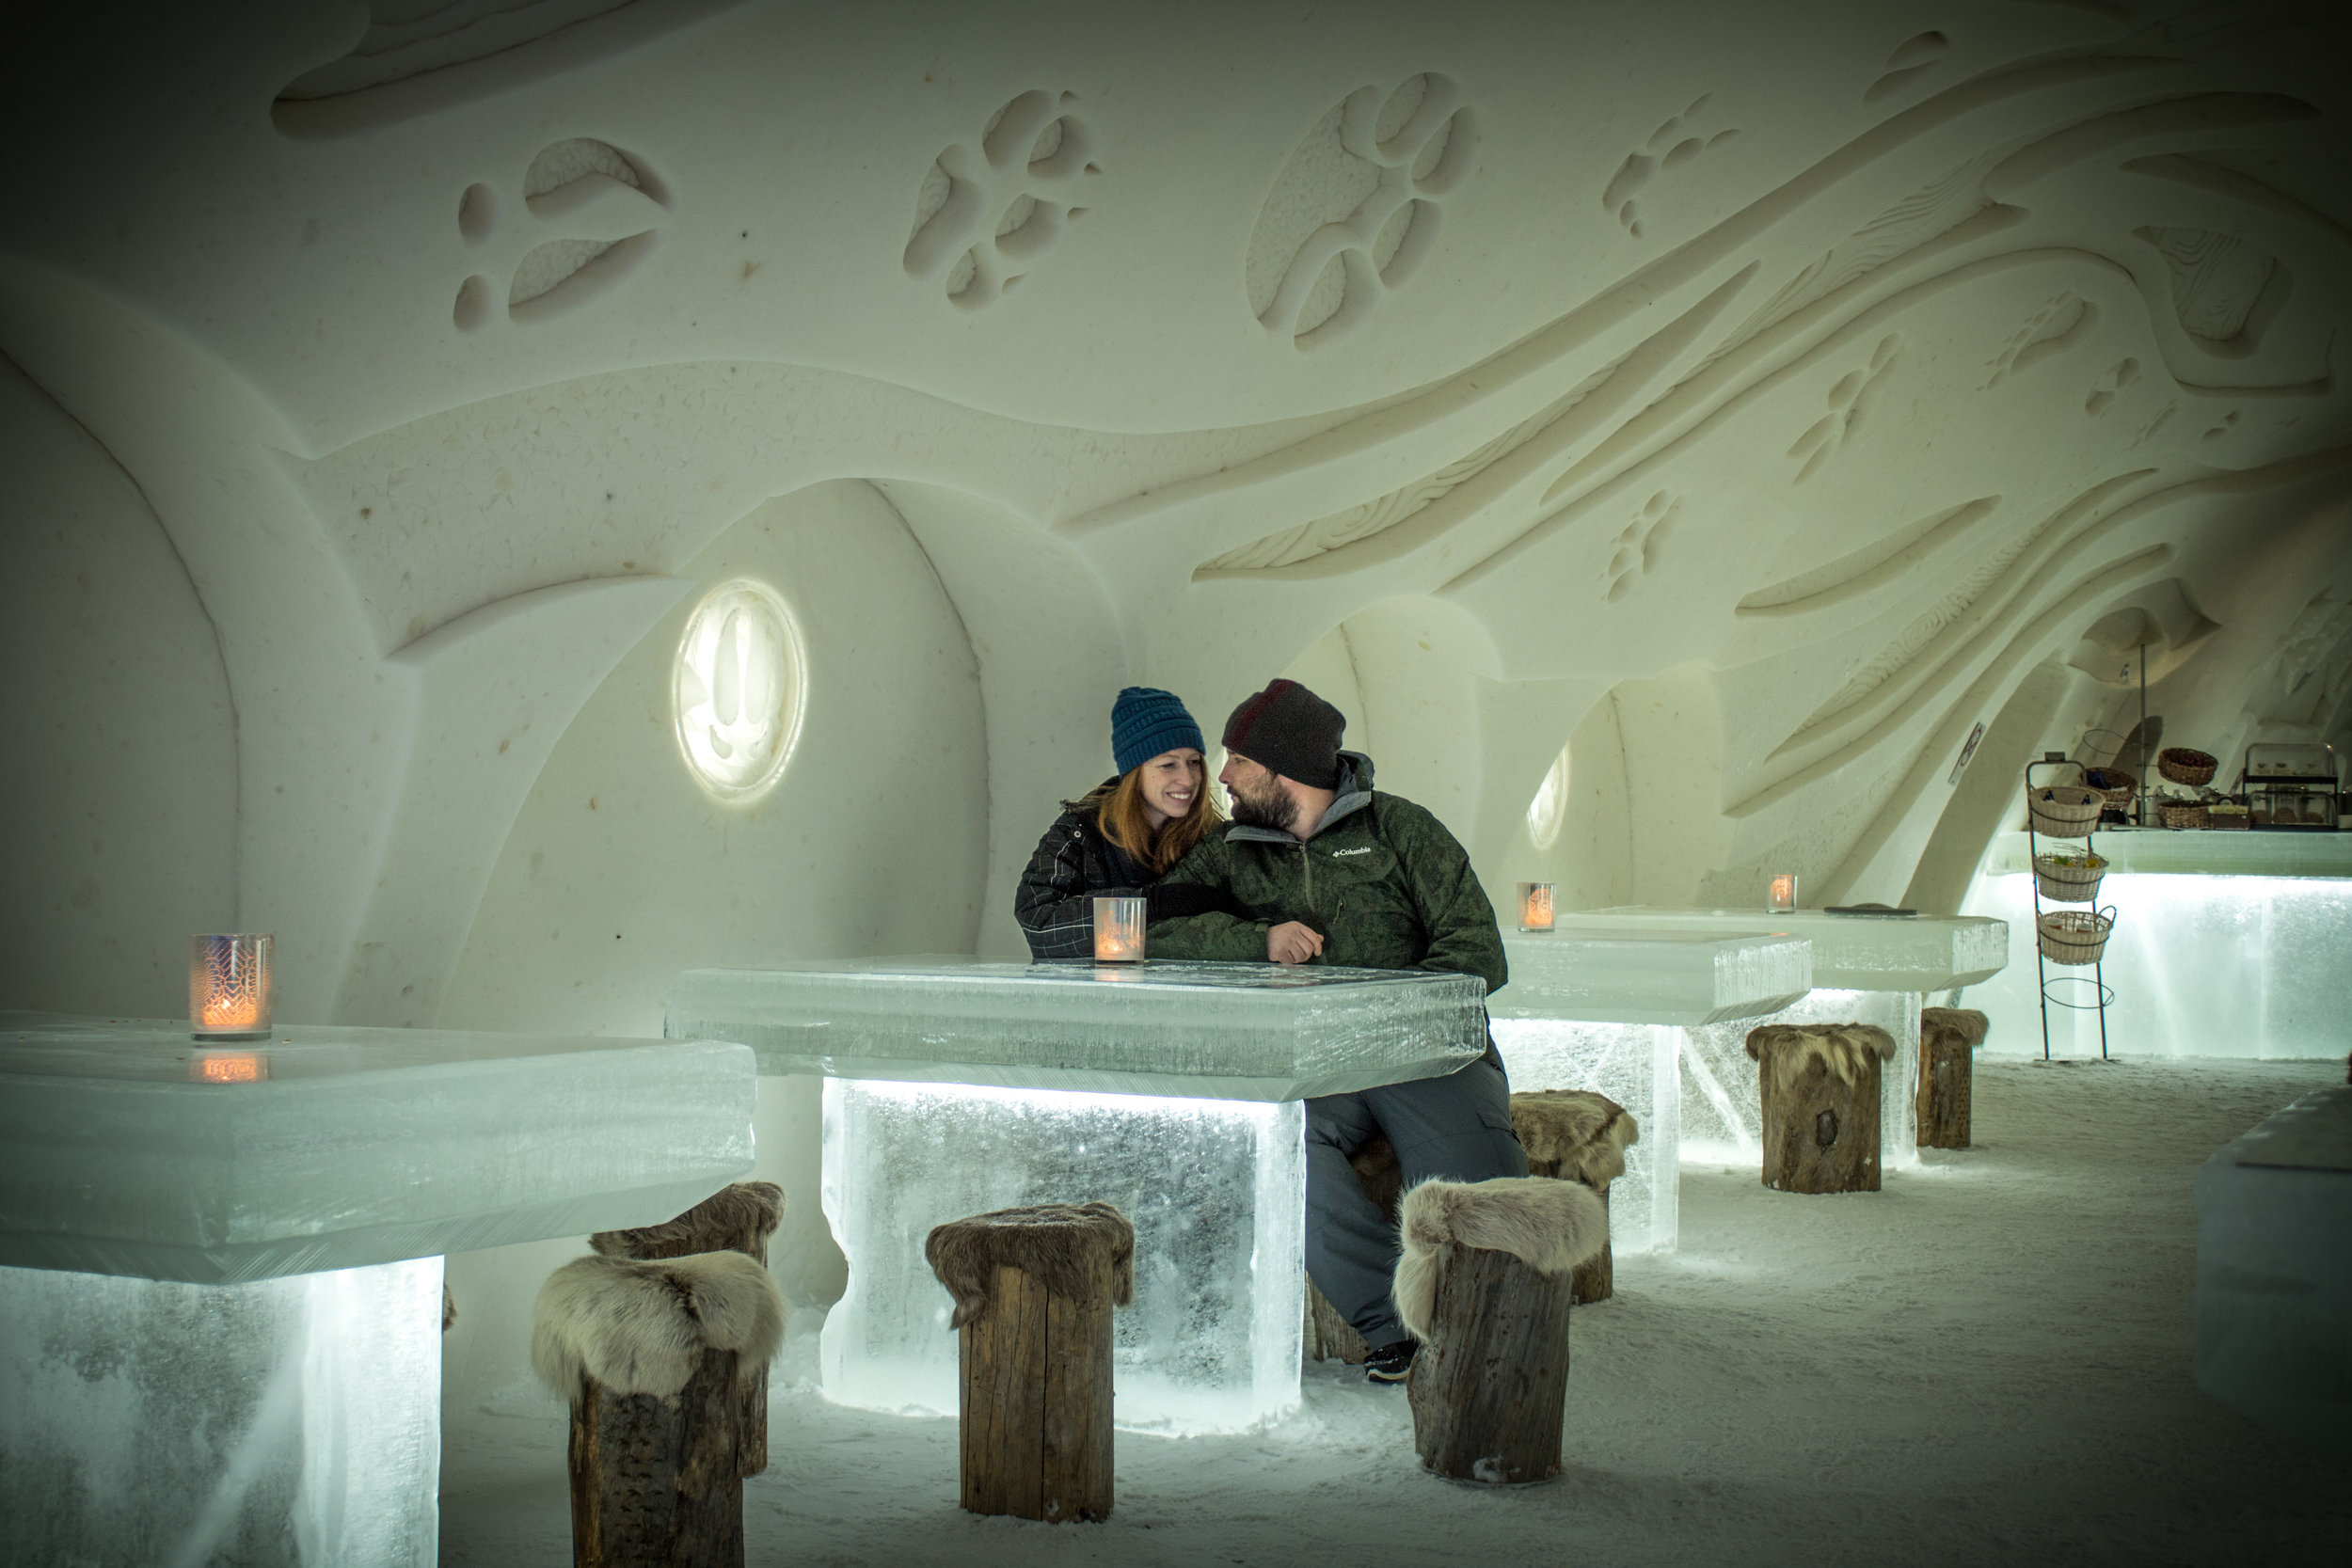 Snow Restaurant - Eat in an ice restaurant in Kemi Finland, Lapland